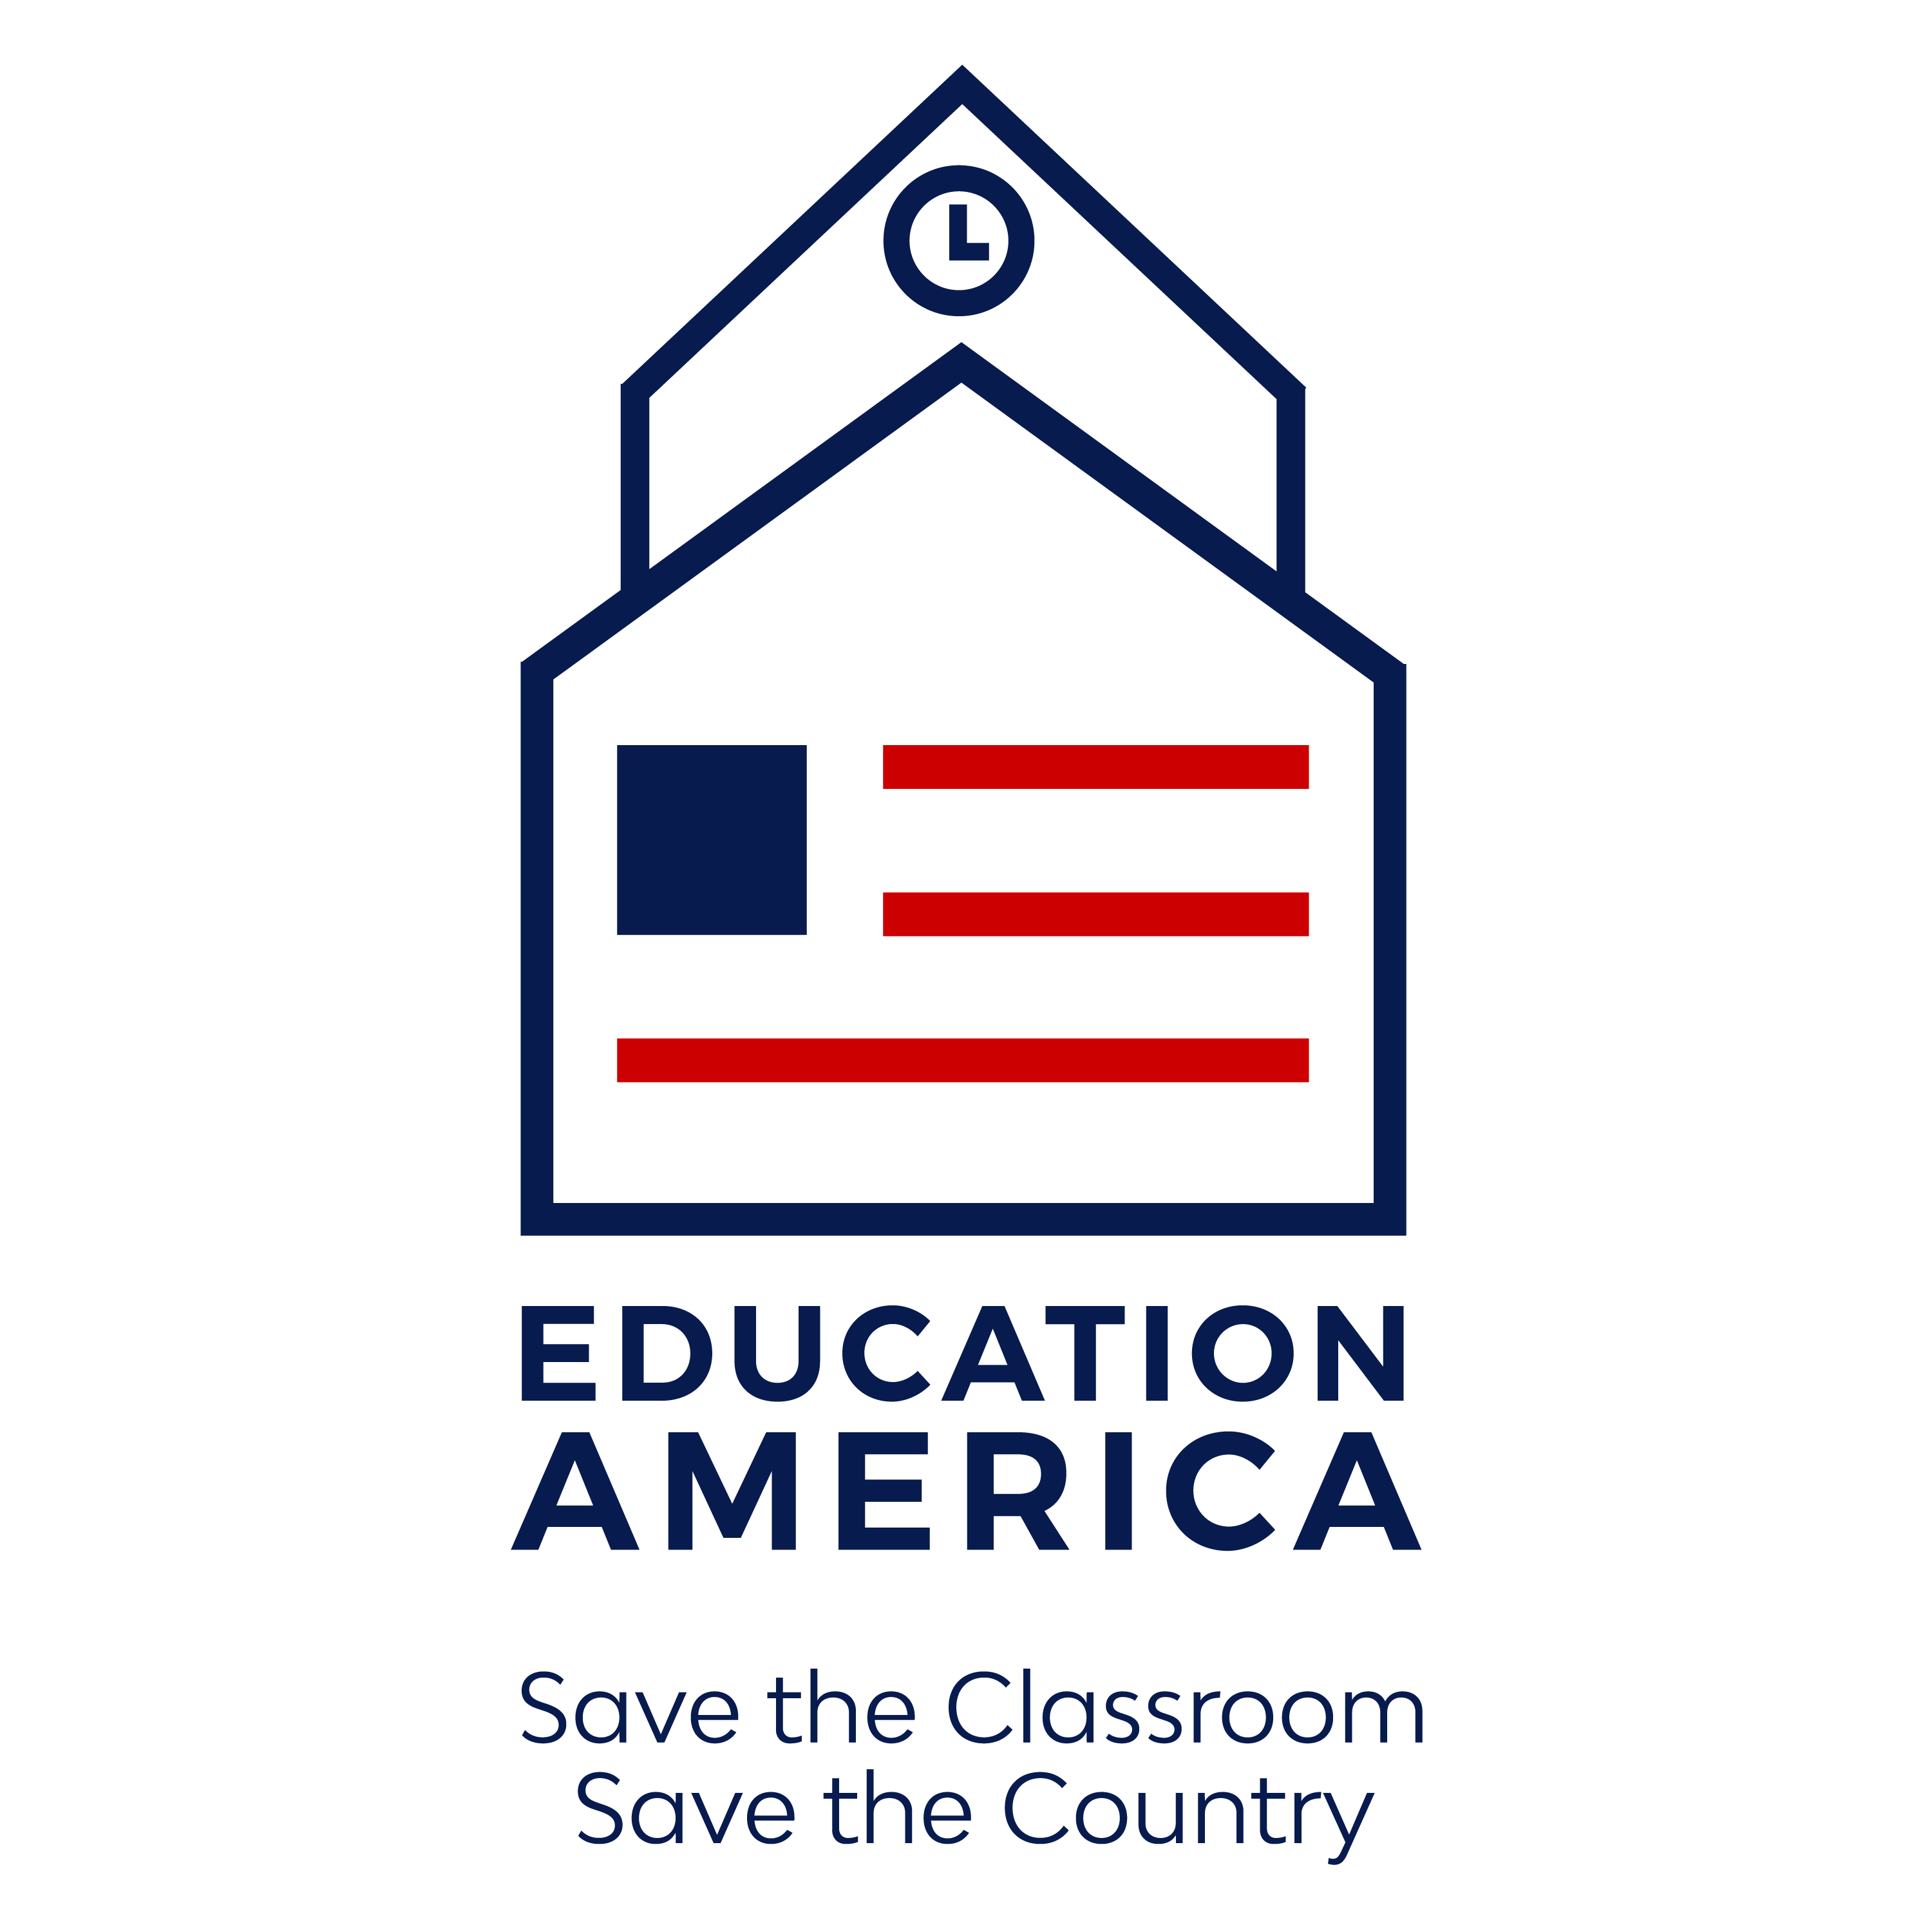 Education America